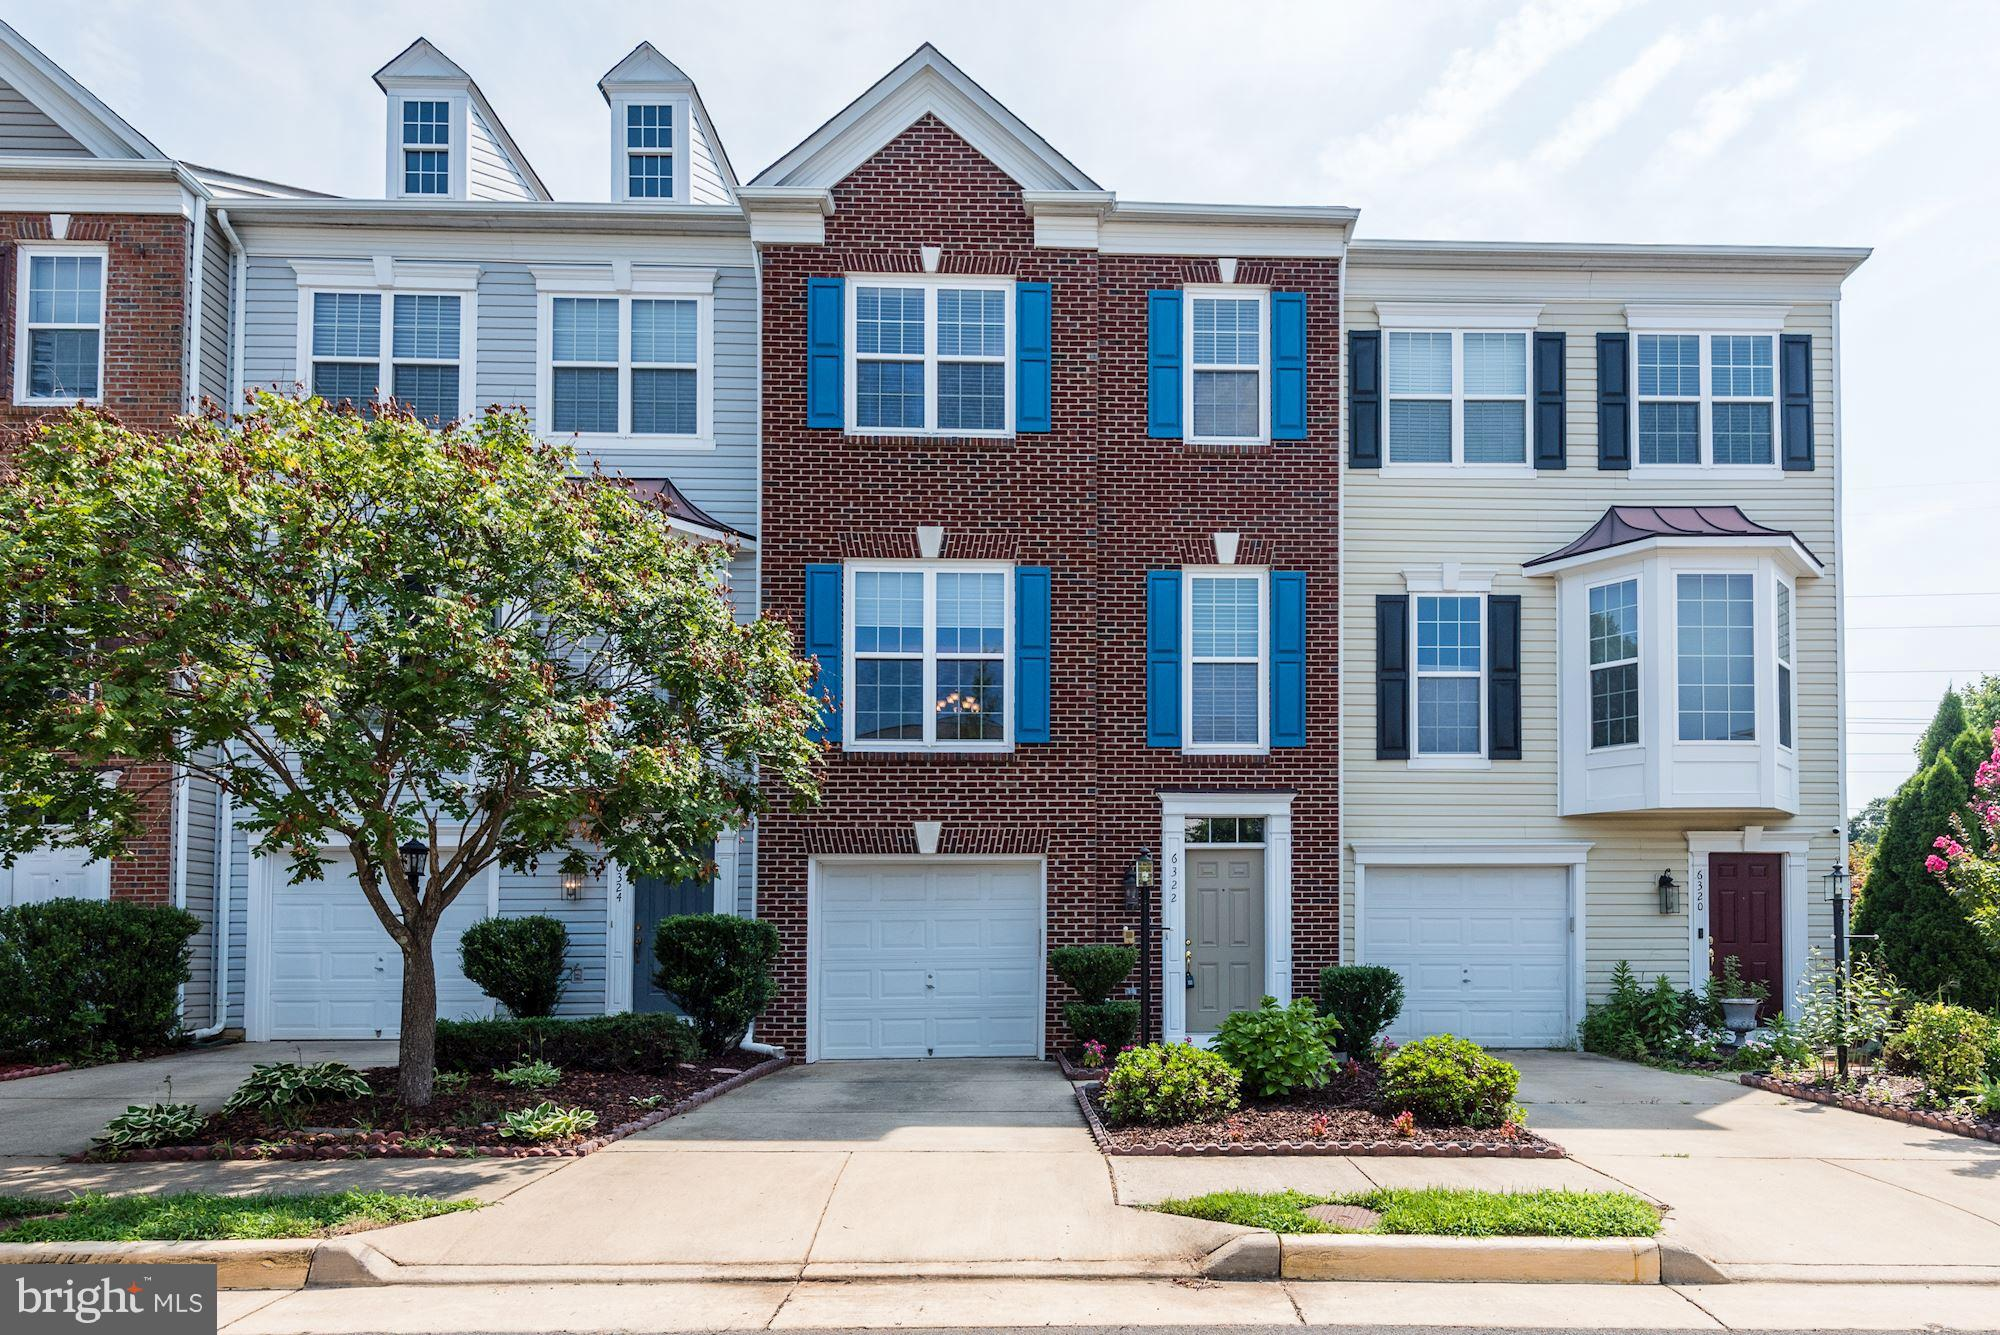 New Listing! - Spacious & beautiful 3 bed/3.5 bath townhouse is perfectly situated near both Springfield Metro (6 min) & vibrant Kingstowne (9 min); the first floor has an attached 1-car garage a rec room, the 1st bedroom, a private entrance via the patio & a full bath - making is a good option for an au pair/in law sutie, etc; the Master Suite is expansive & you will love the attached nook & bath